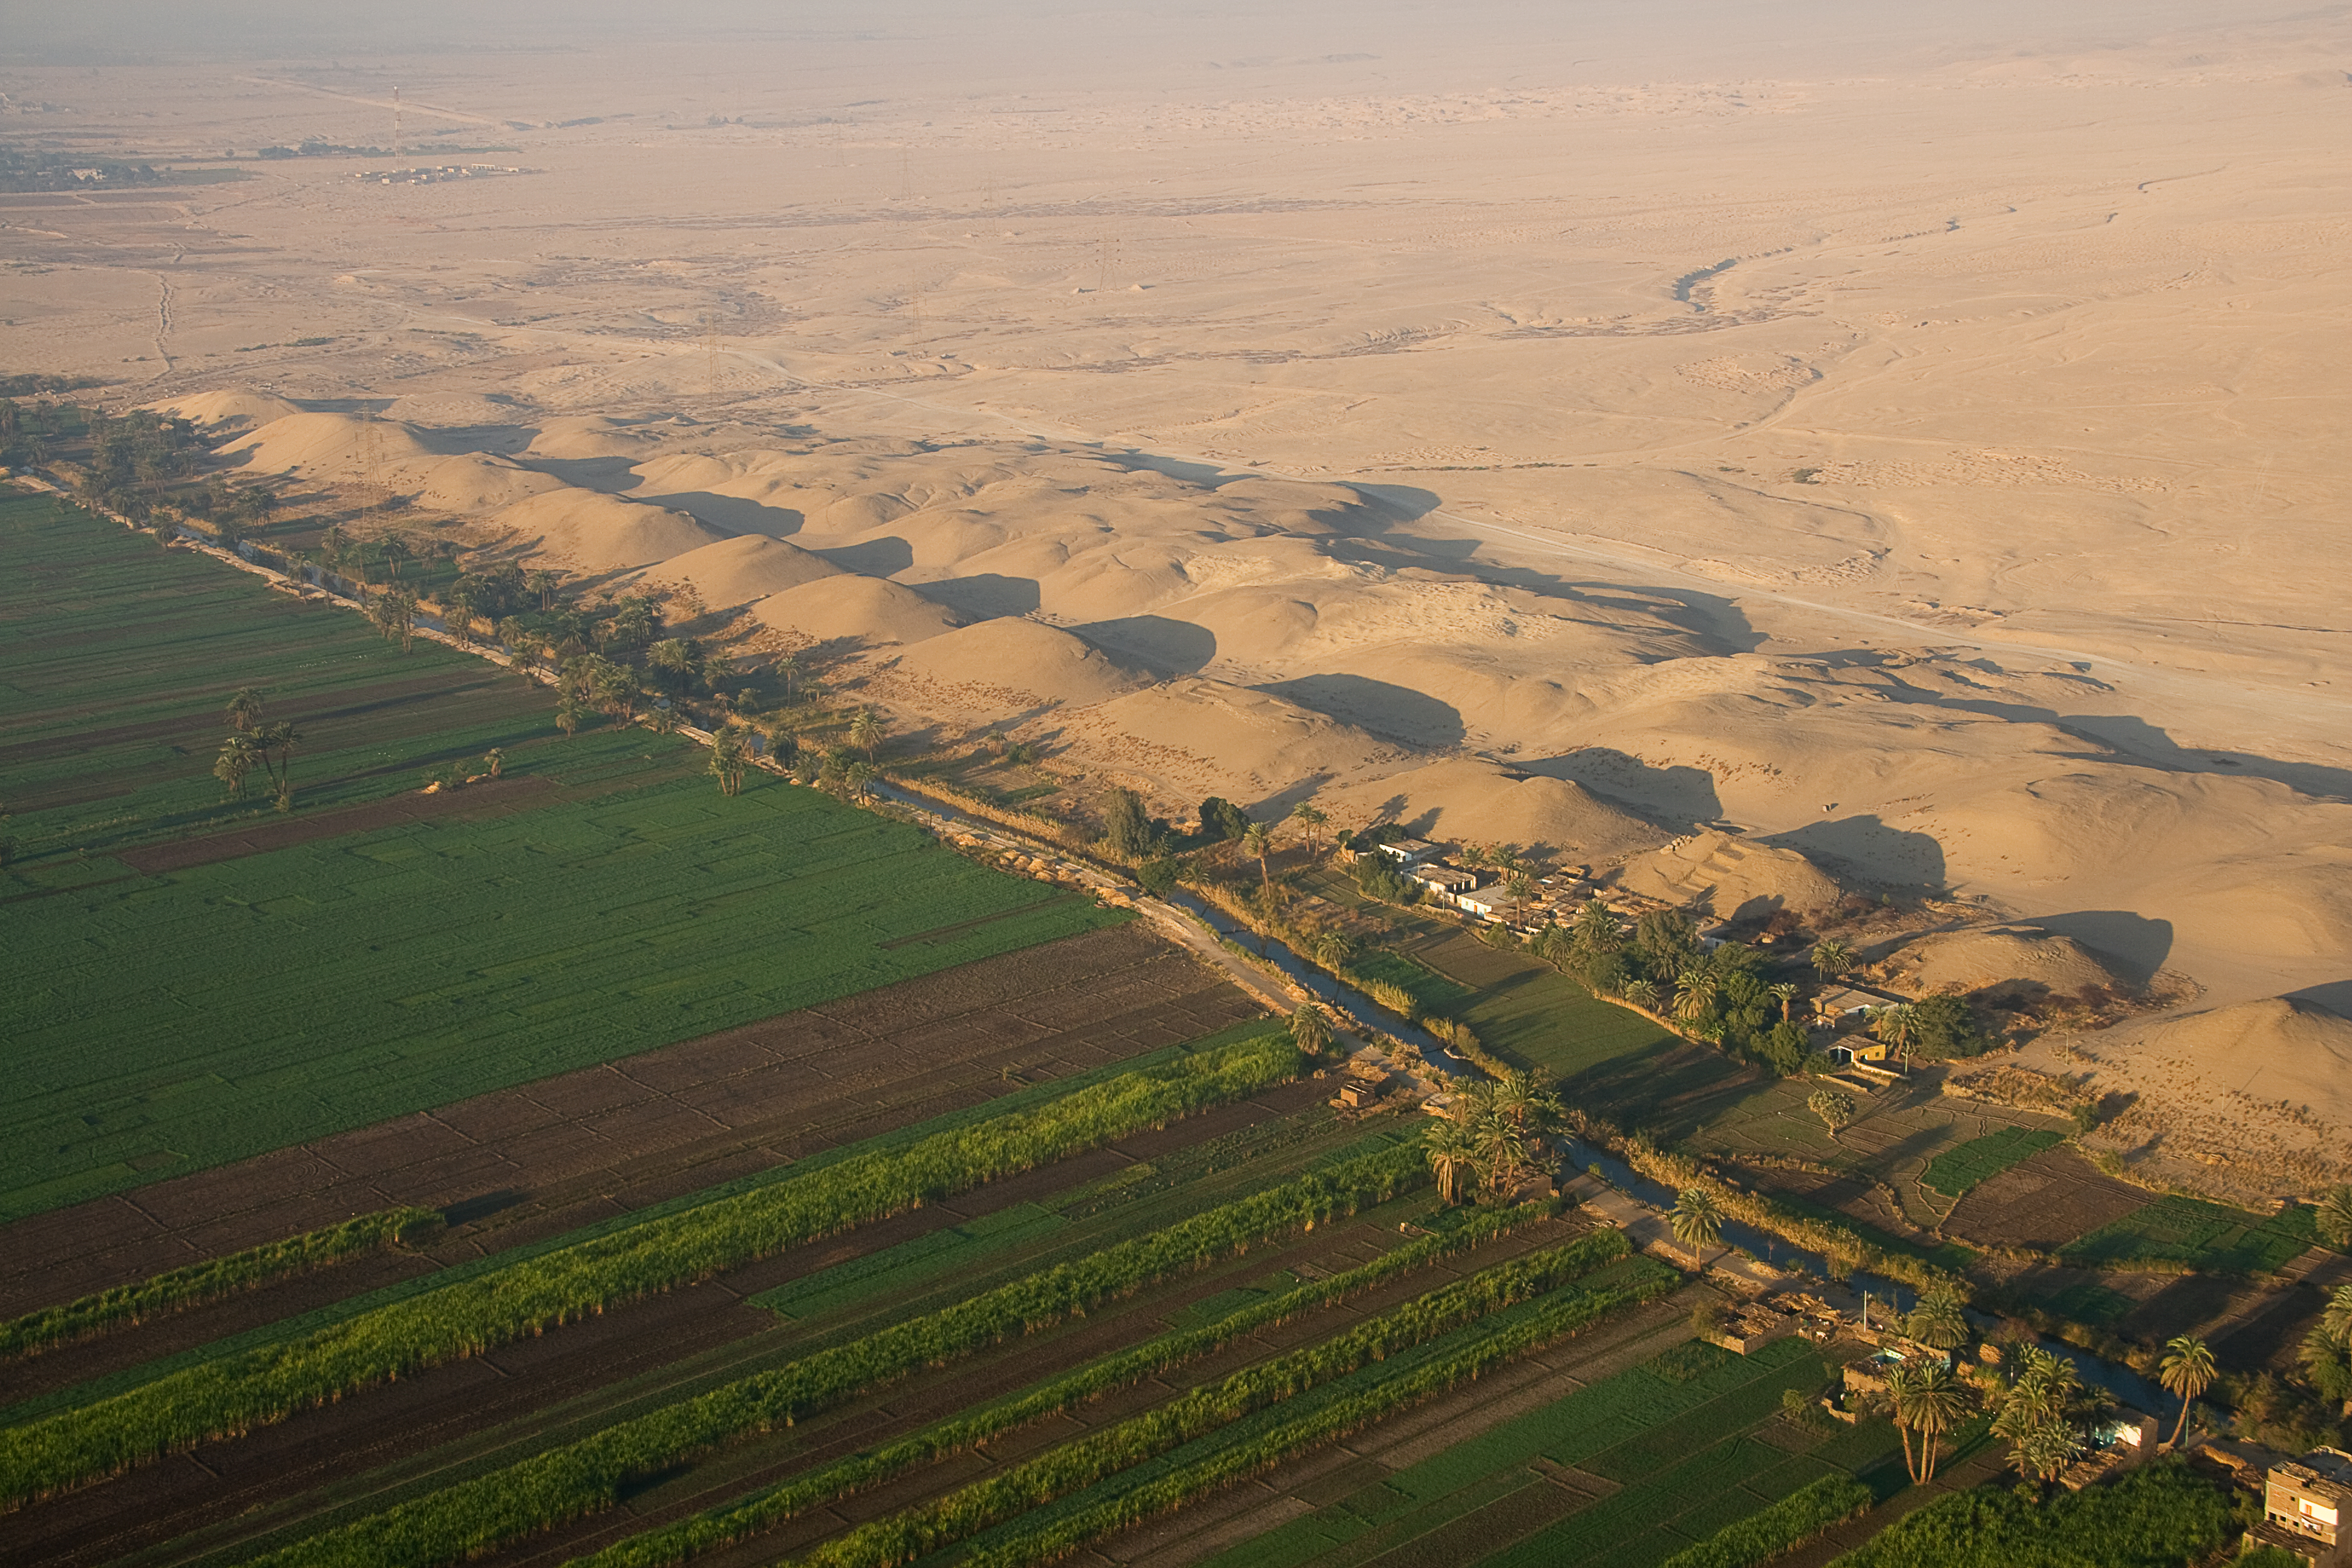 File:Nile Flood plain limits (2009).jpg - Wikipedia, the free ...